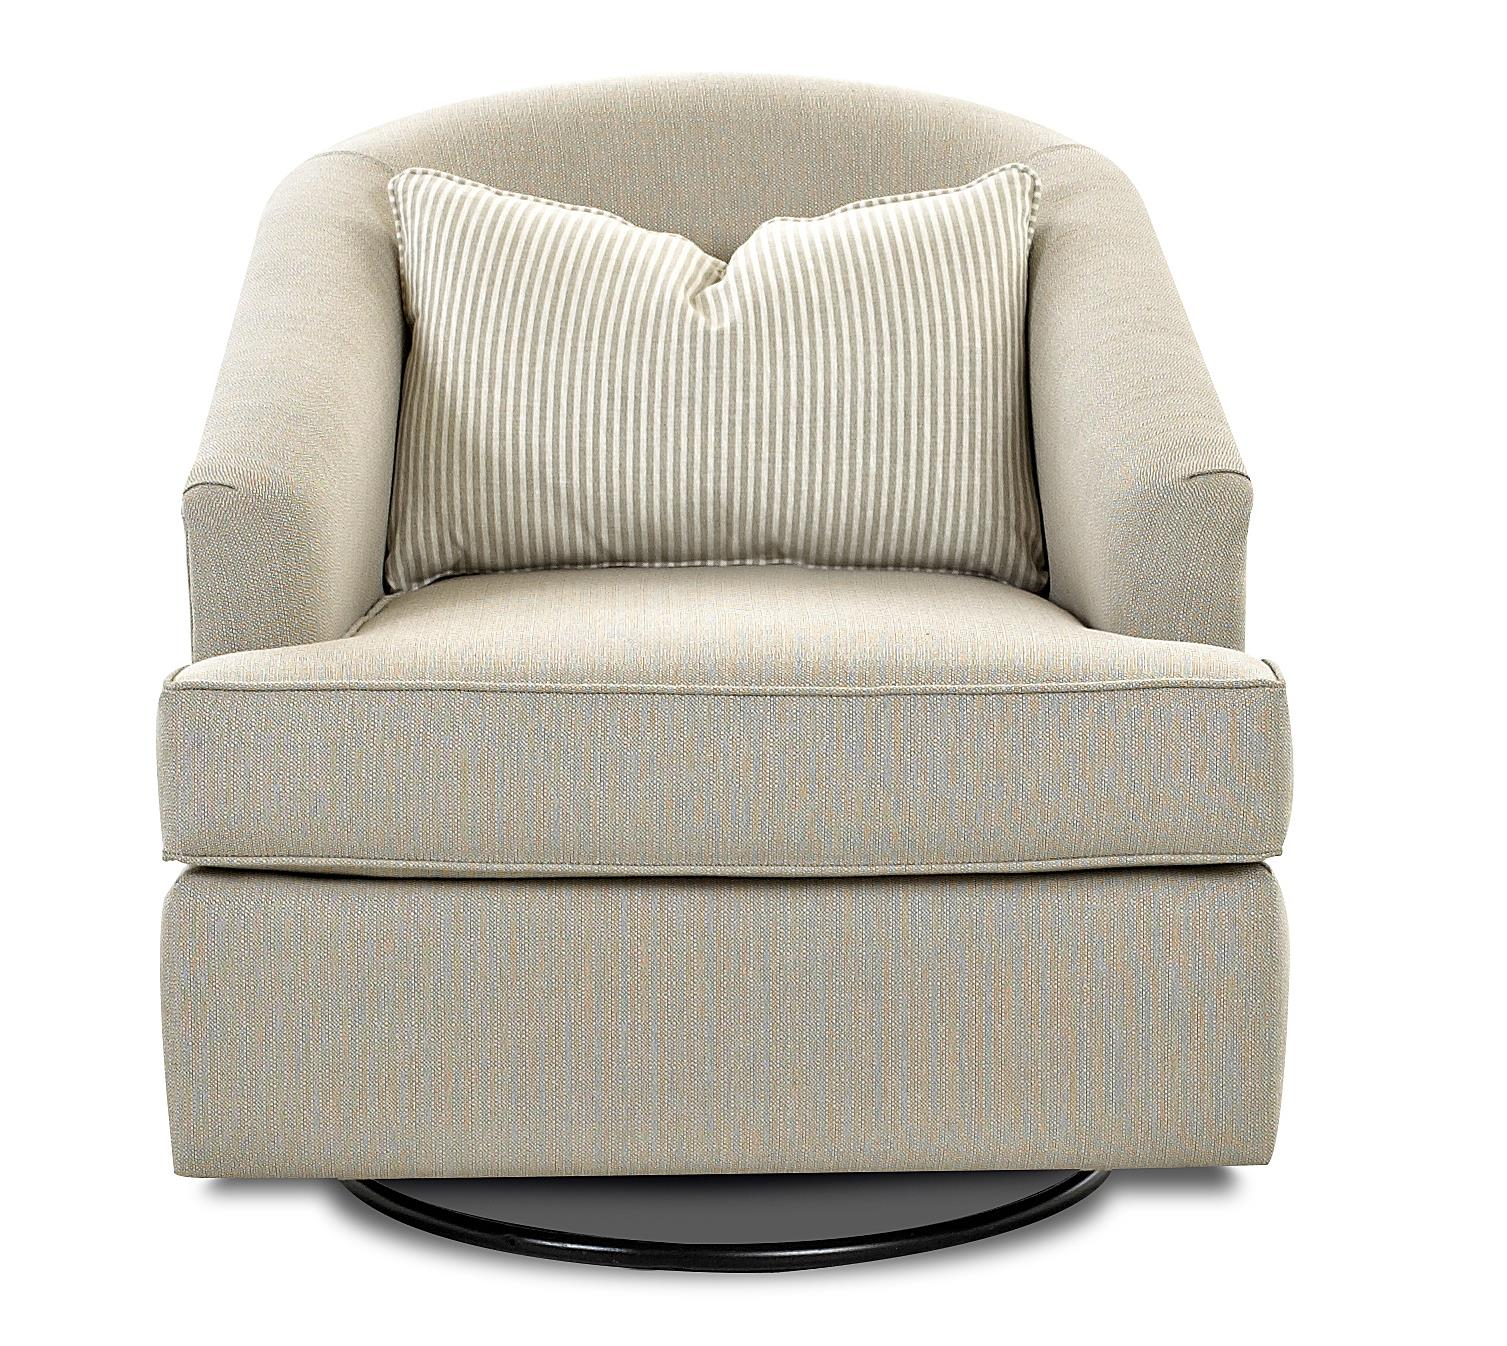 Klaussner Chairs and Accents Devon Swivel Glide Chair - Item Number: K790P SWGL